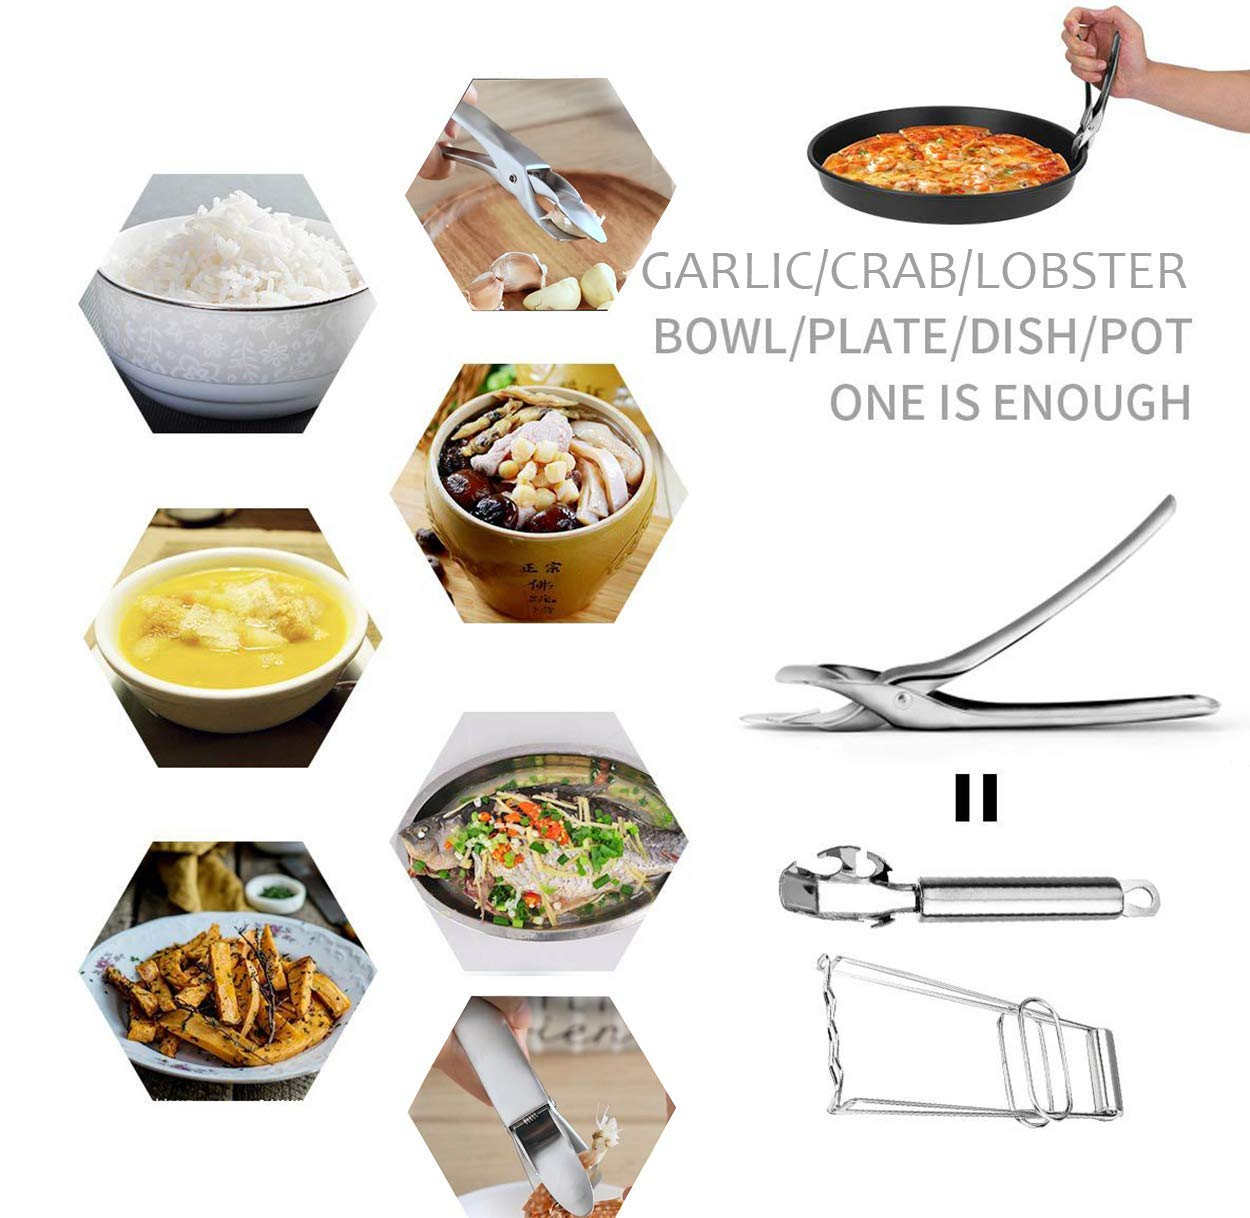 Jubilcuis Scald Proof Tongs, Bowl Clip, 304 Stainless Steel Anti-Scalding Dish Clip, Plate Clamp, Retriever Tongs Gripper Clip for Microwave Oven Air Fryer Instant Hot Pot, Heat Resistant Kitchen Tool